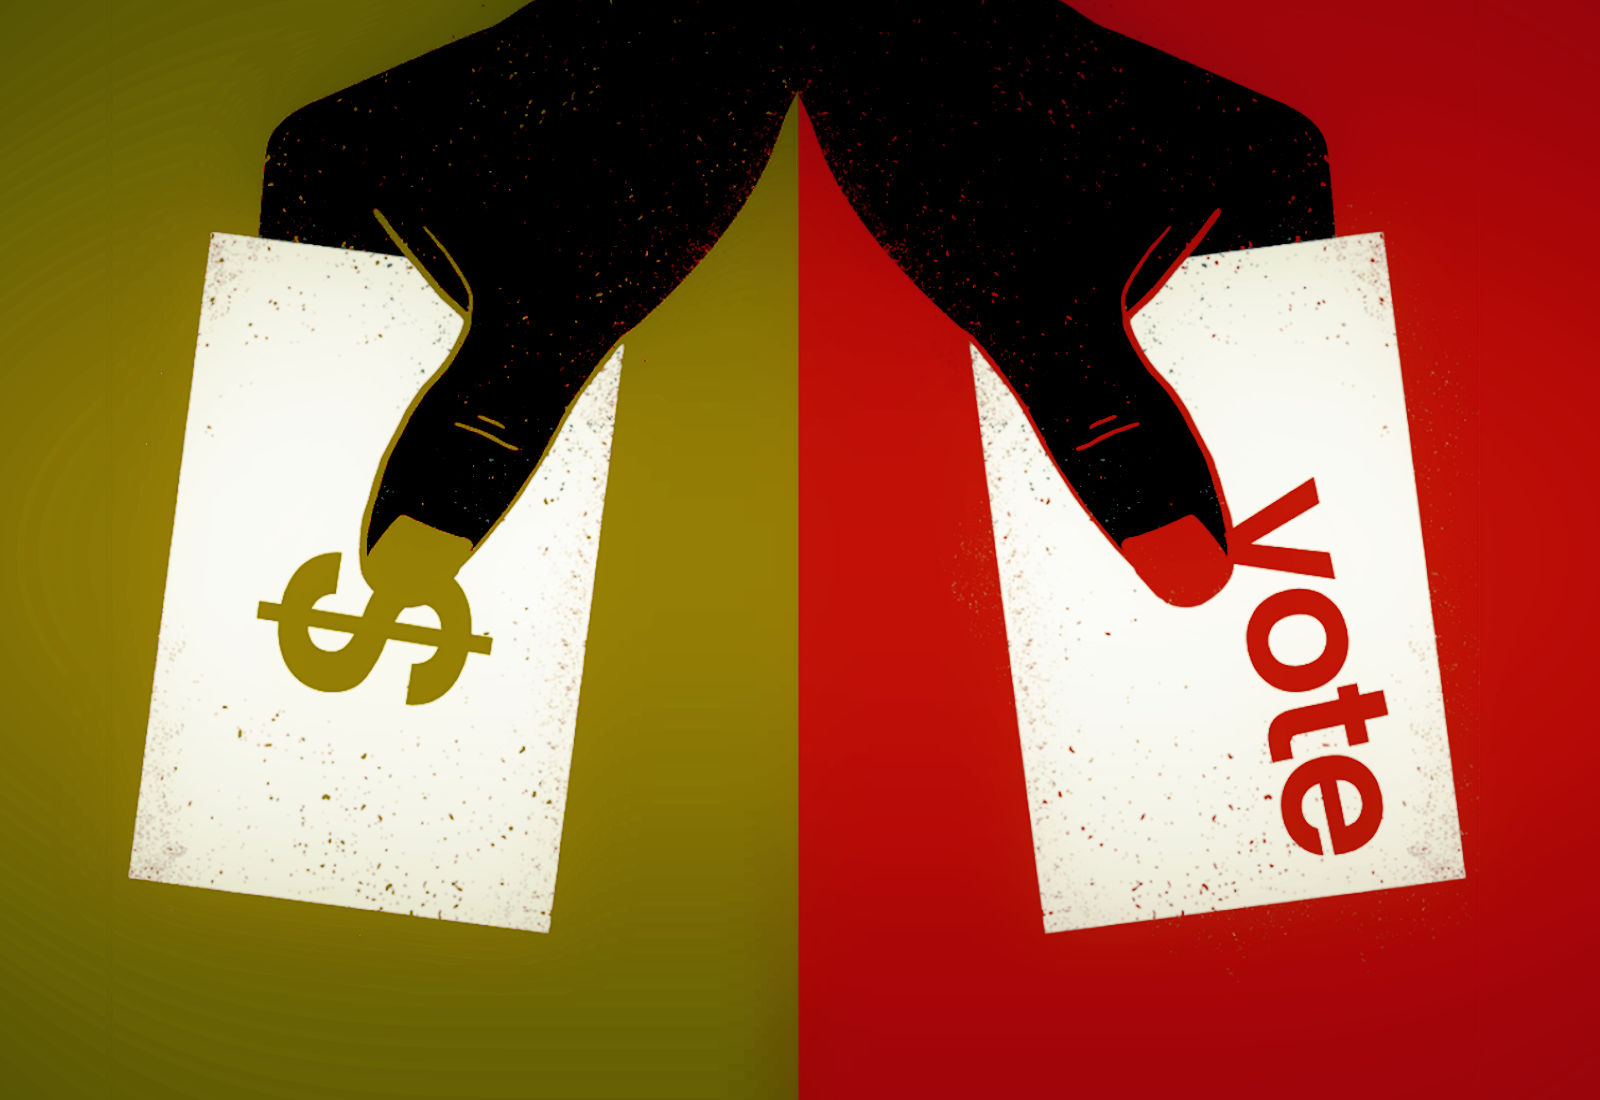 WHO HAS MORE POWER? - YOUR VOTE OR YOUR DOLLAR?The power of protest has not stopped Oil & Coal. As long as these two commodities are profitable, the problems related to the acquisition and use of fossil fuels will continue. So shop with higher purpose and support competitive commodities.. Hemp & Bamboo